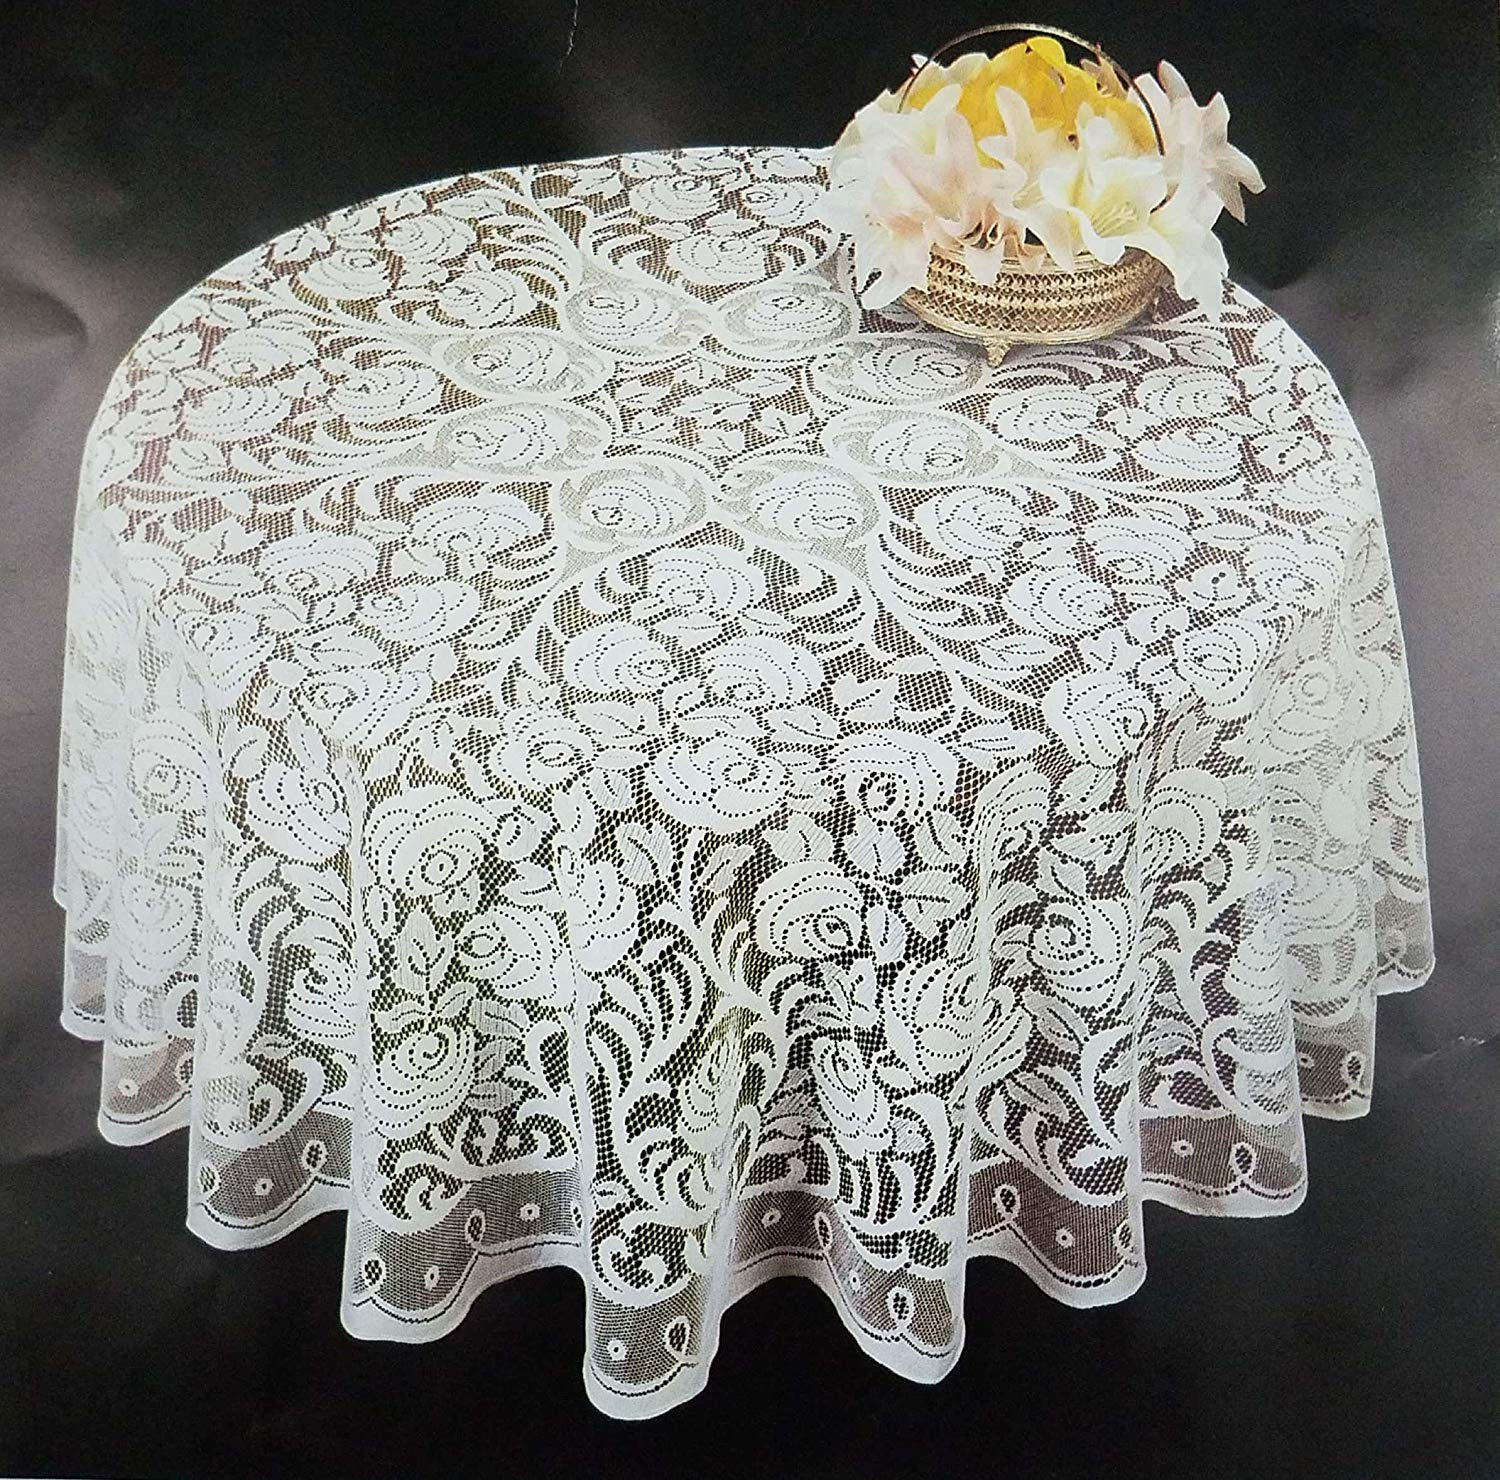 Lace Tablecloths Oval 300x300.jpg AdonisUSA Round White or Ecru Lace Tablecloth with Dalia Floral Design  (Ecru)